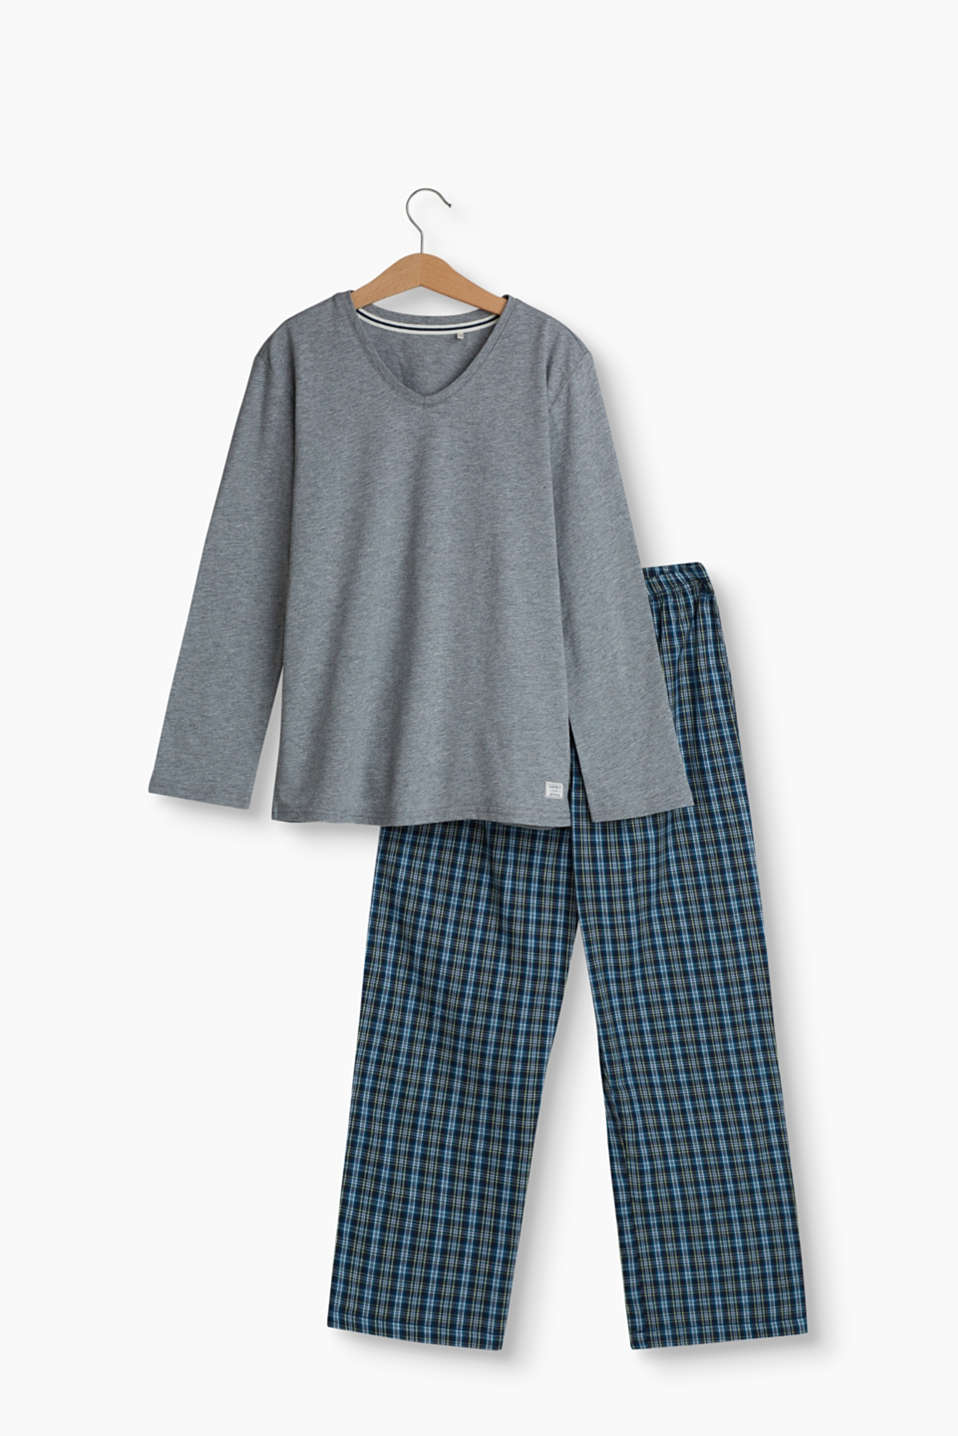 Pyjamas consisting of a melange, cotton blend long sleeve top and cotton bottoms with an elasticated, drawstring waistband